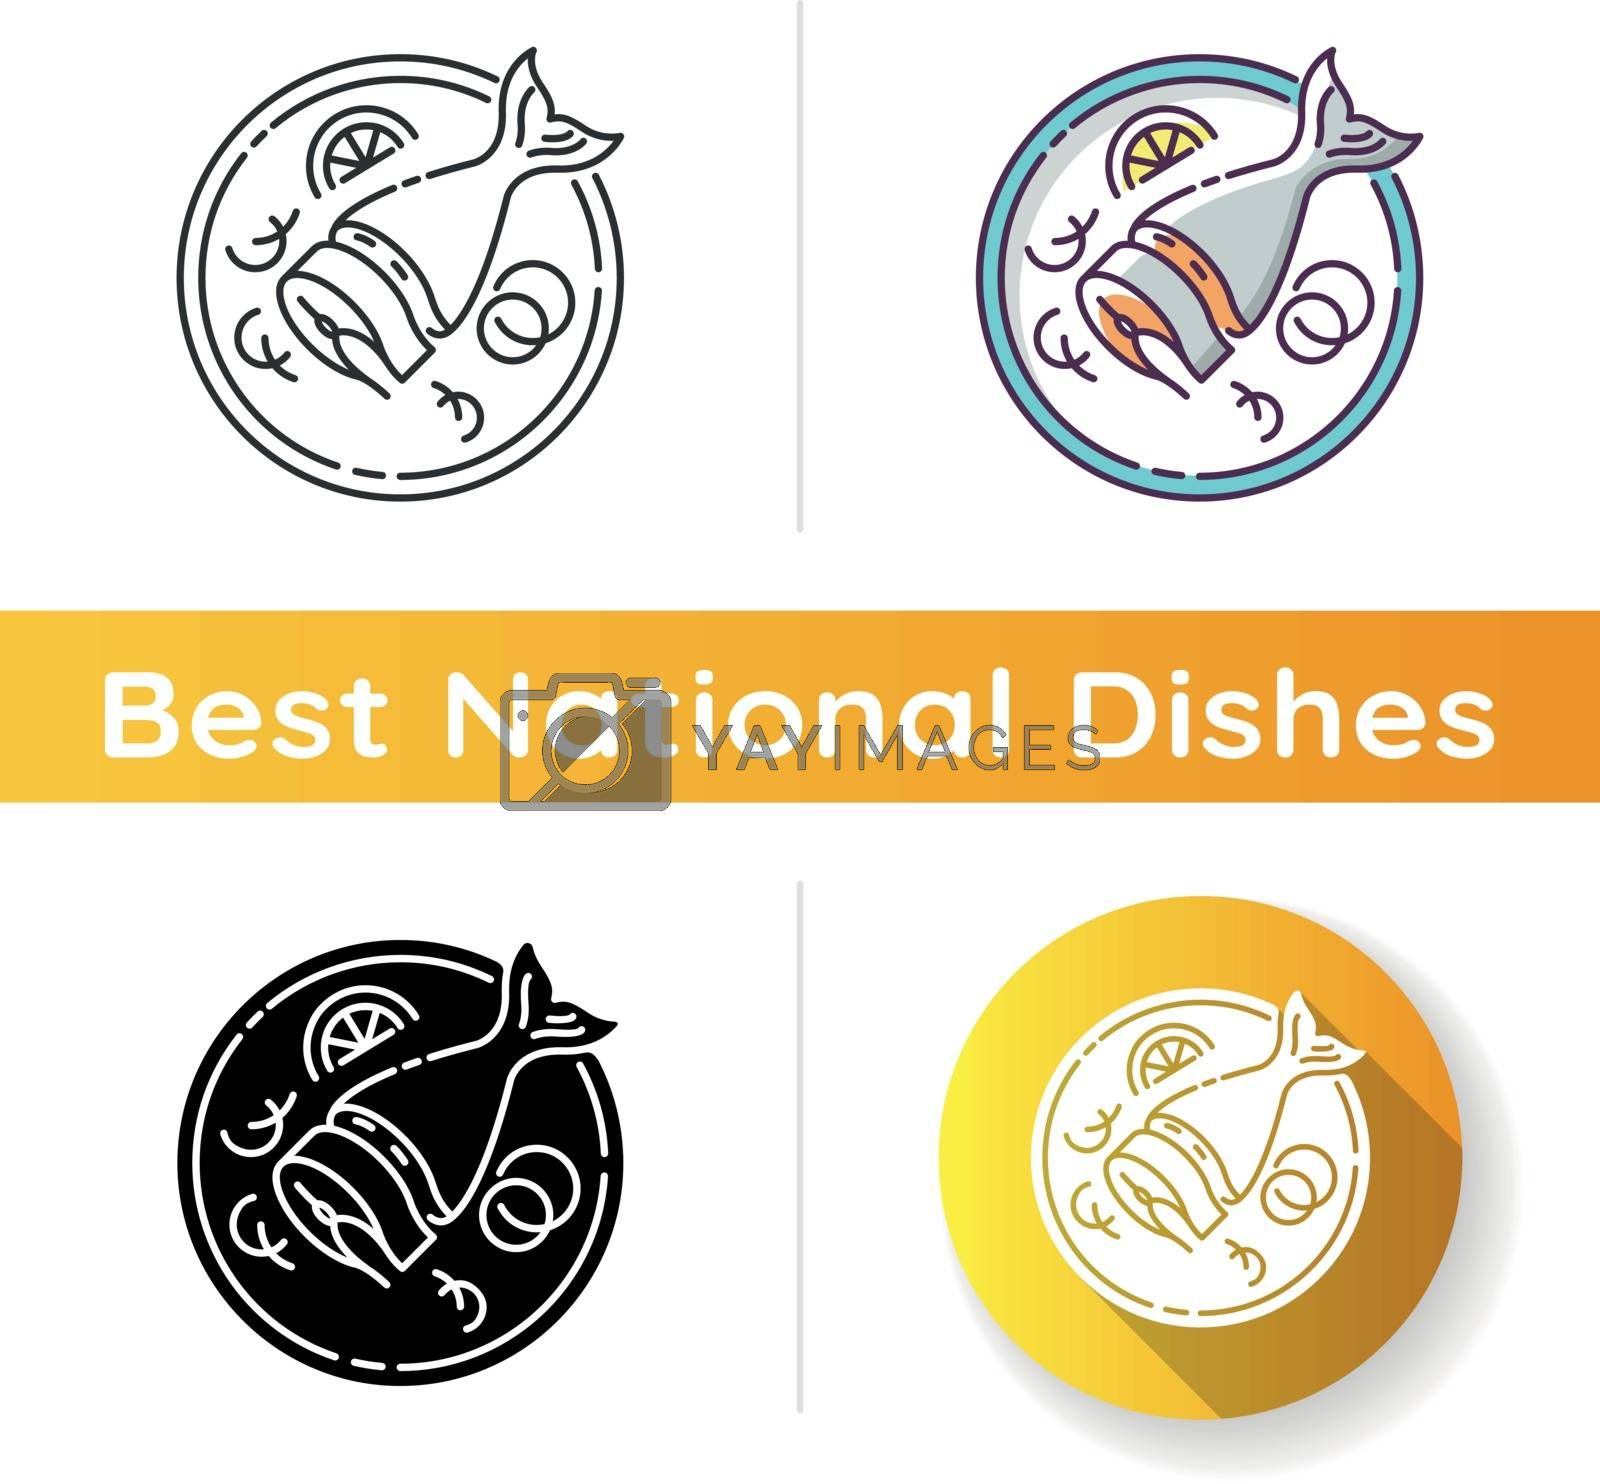 Soused herring icon. Sliced raw fish. Japanese dish. Salmon piece on crockery. Asian fresh meal for nutrition. Cook lunch. Linear black and RGB color styles. Isolated vector illustrations